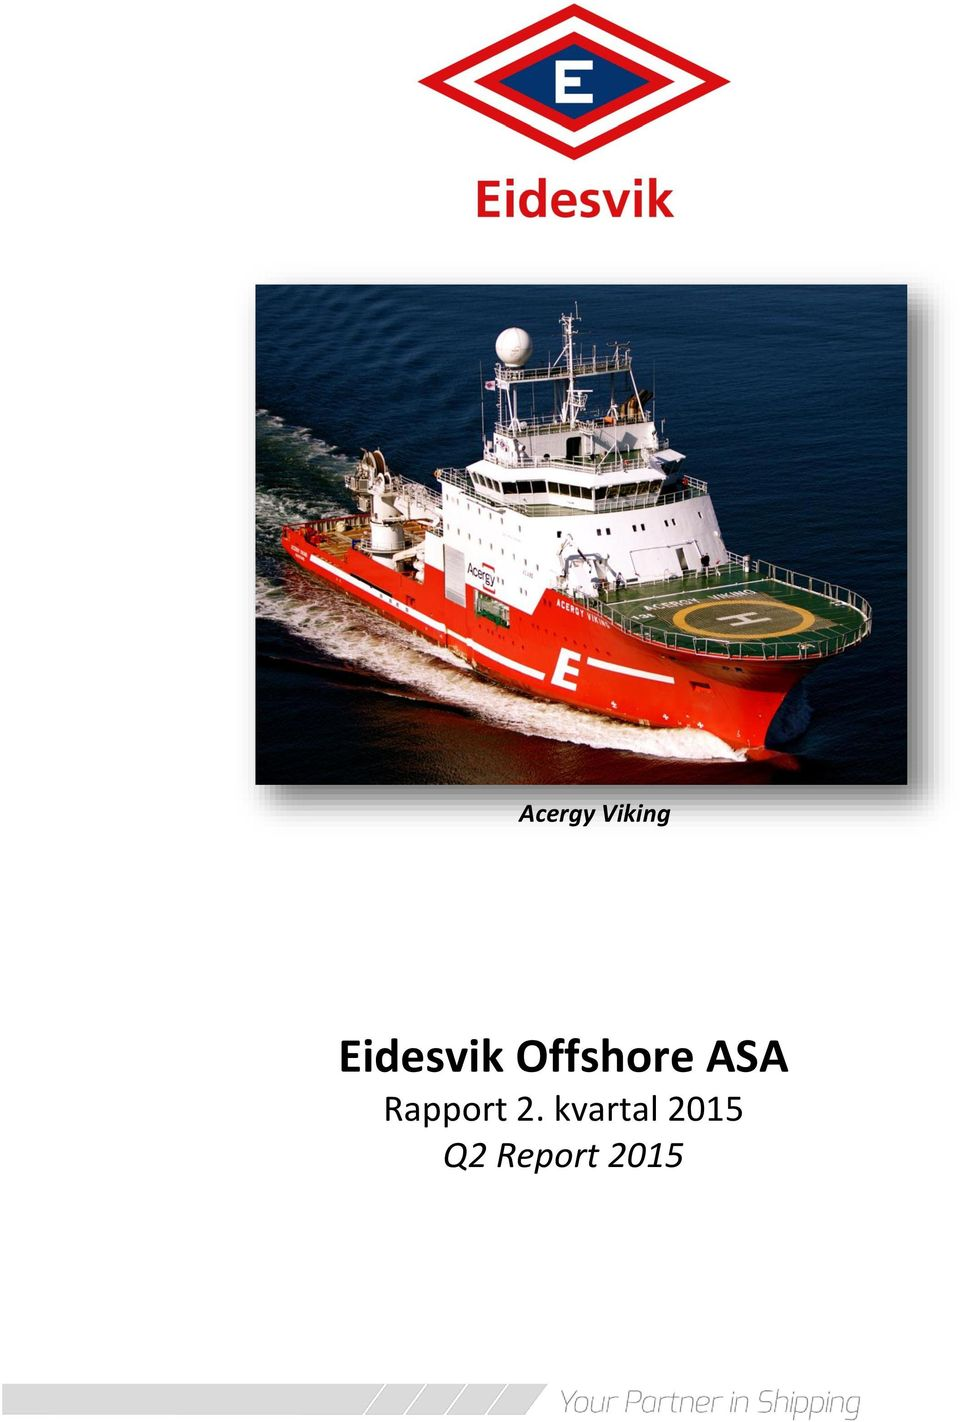 Offshore ASA